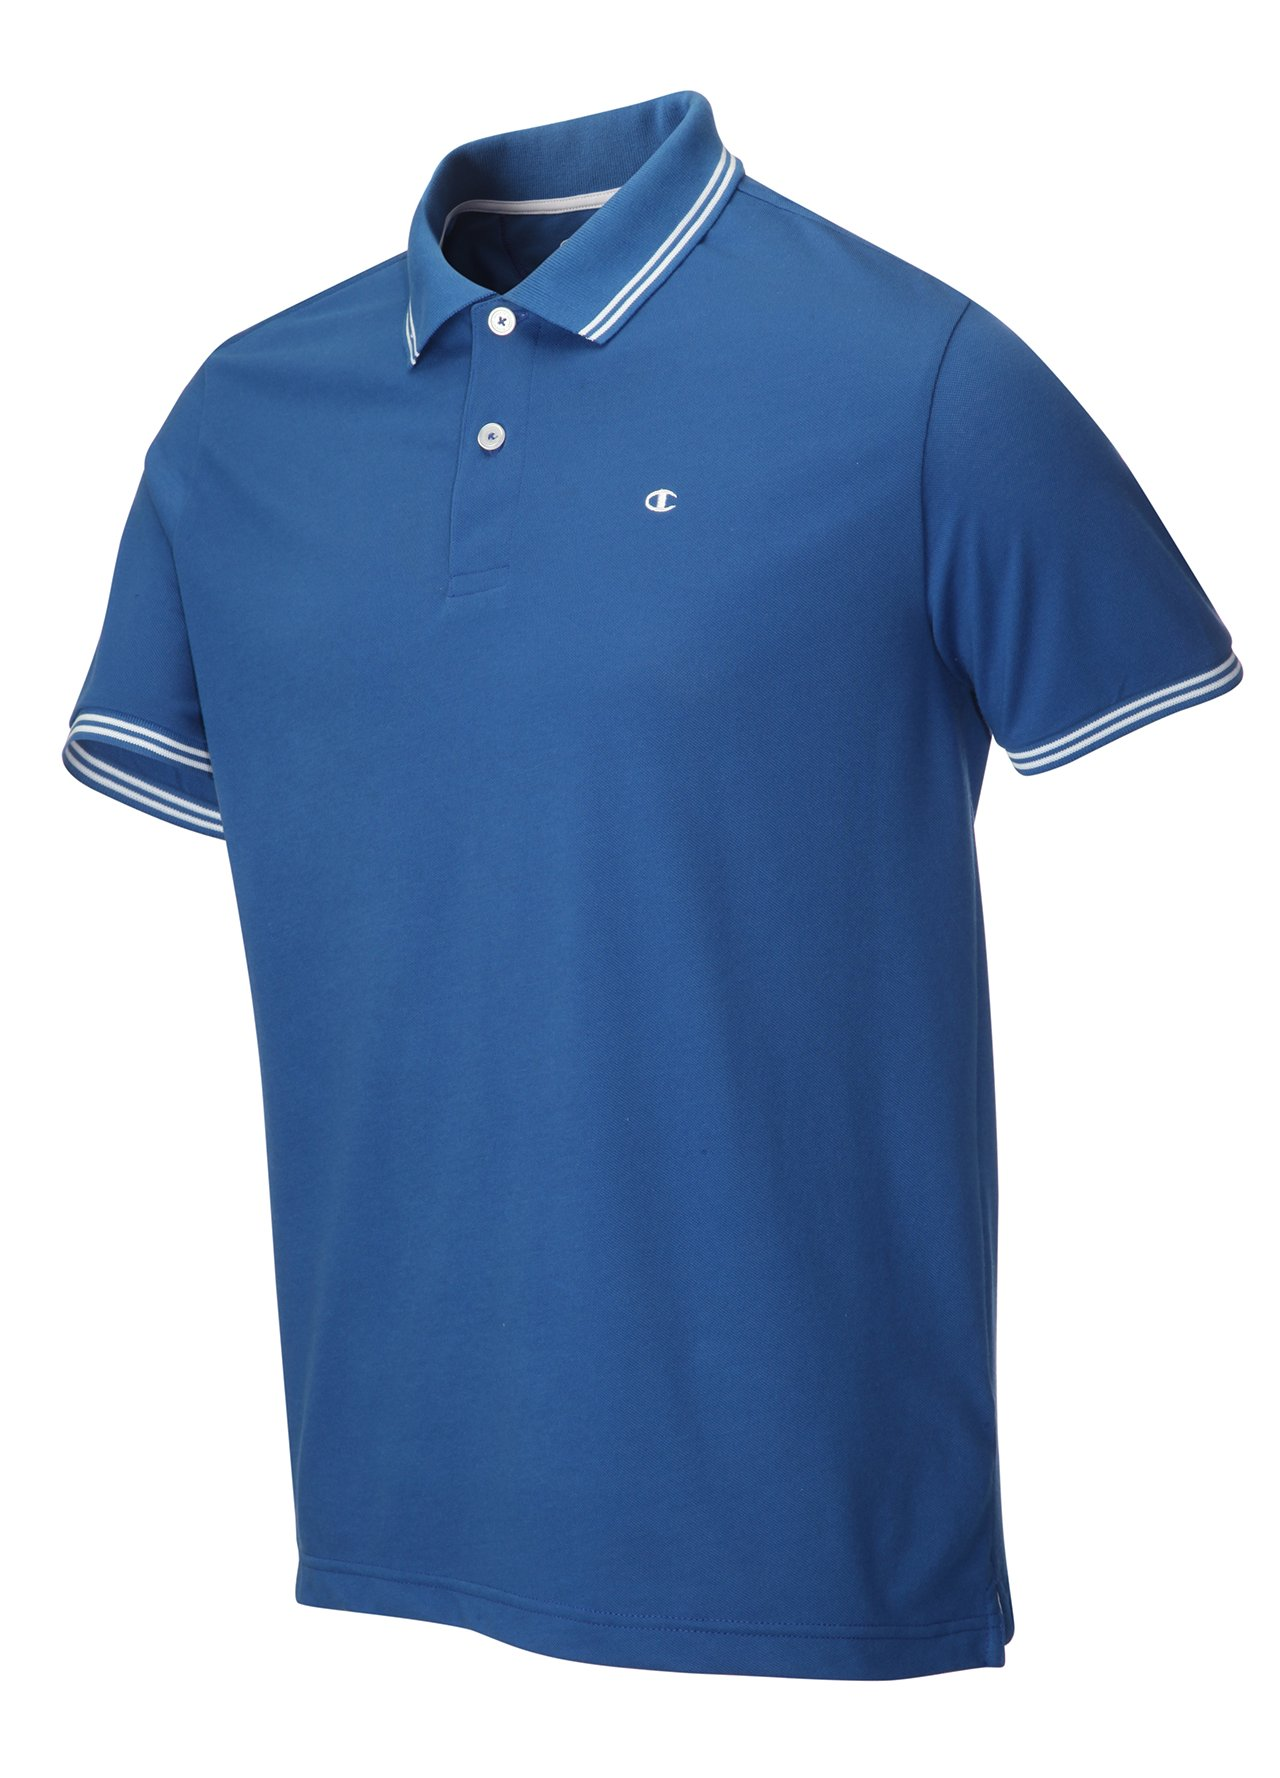 Golf clothing shirts dark grey champion pique